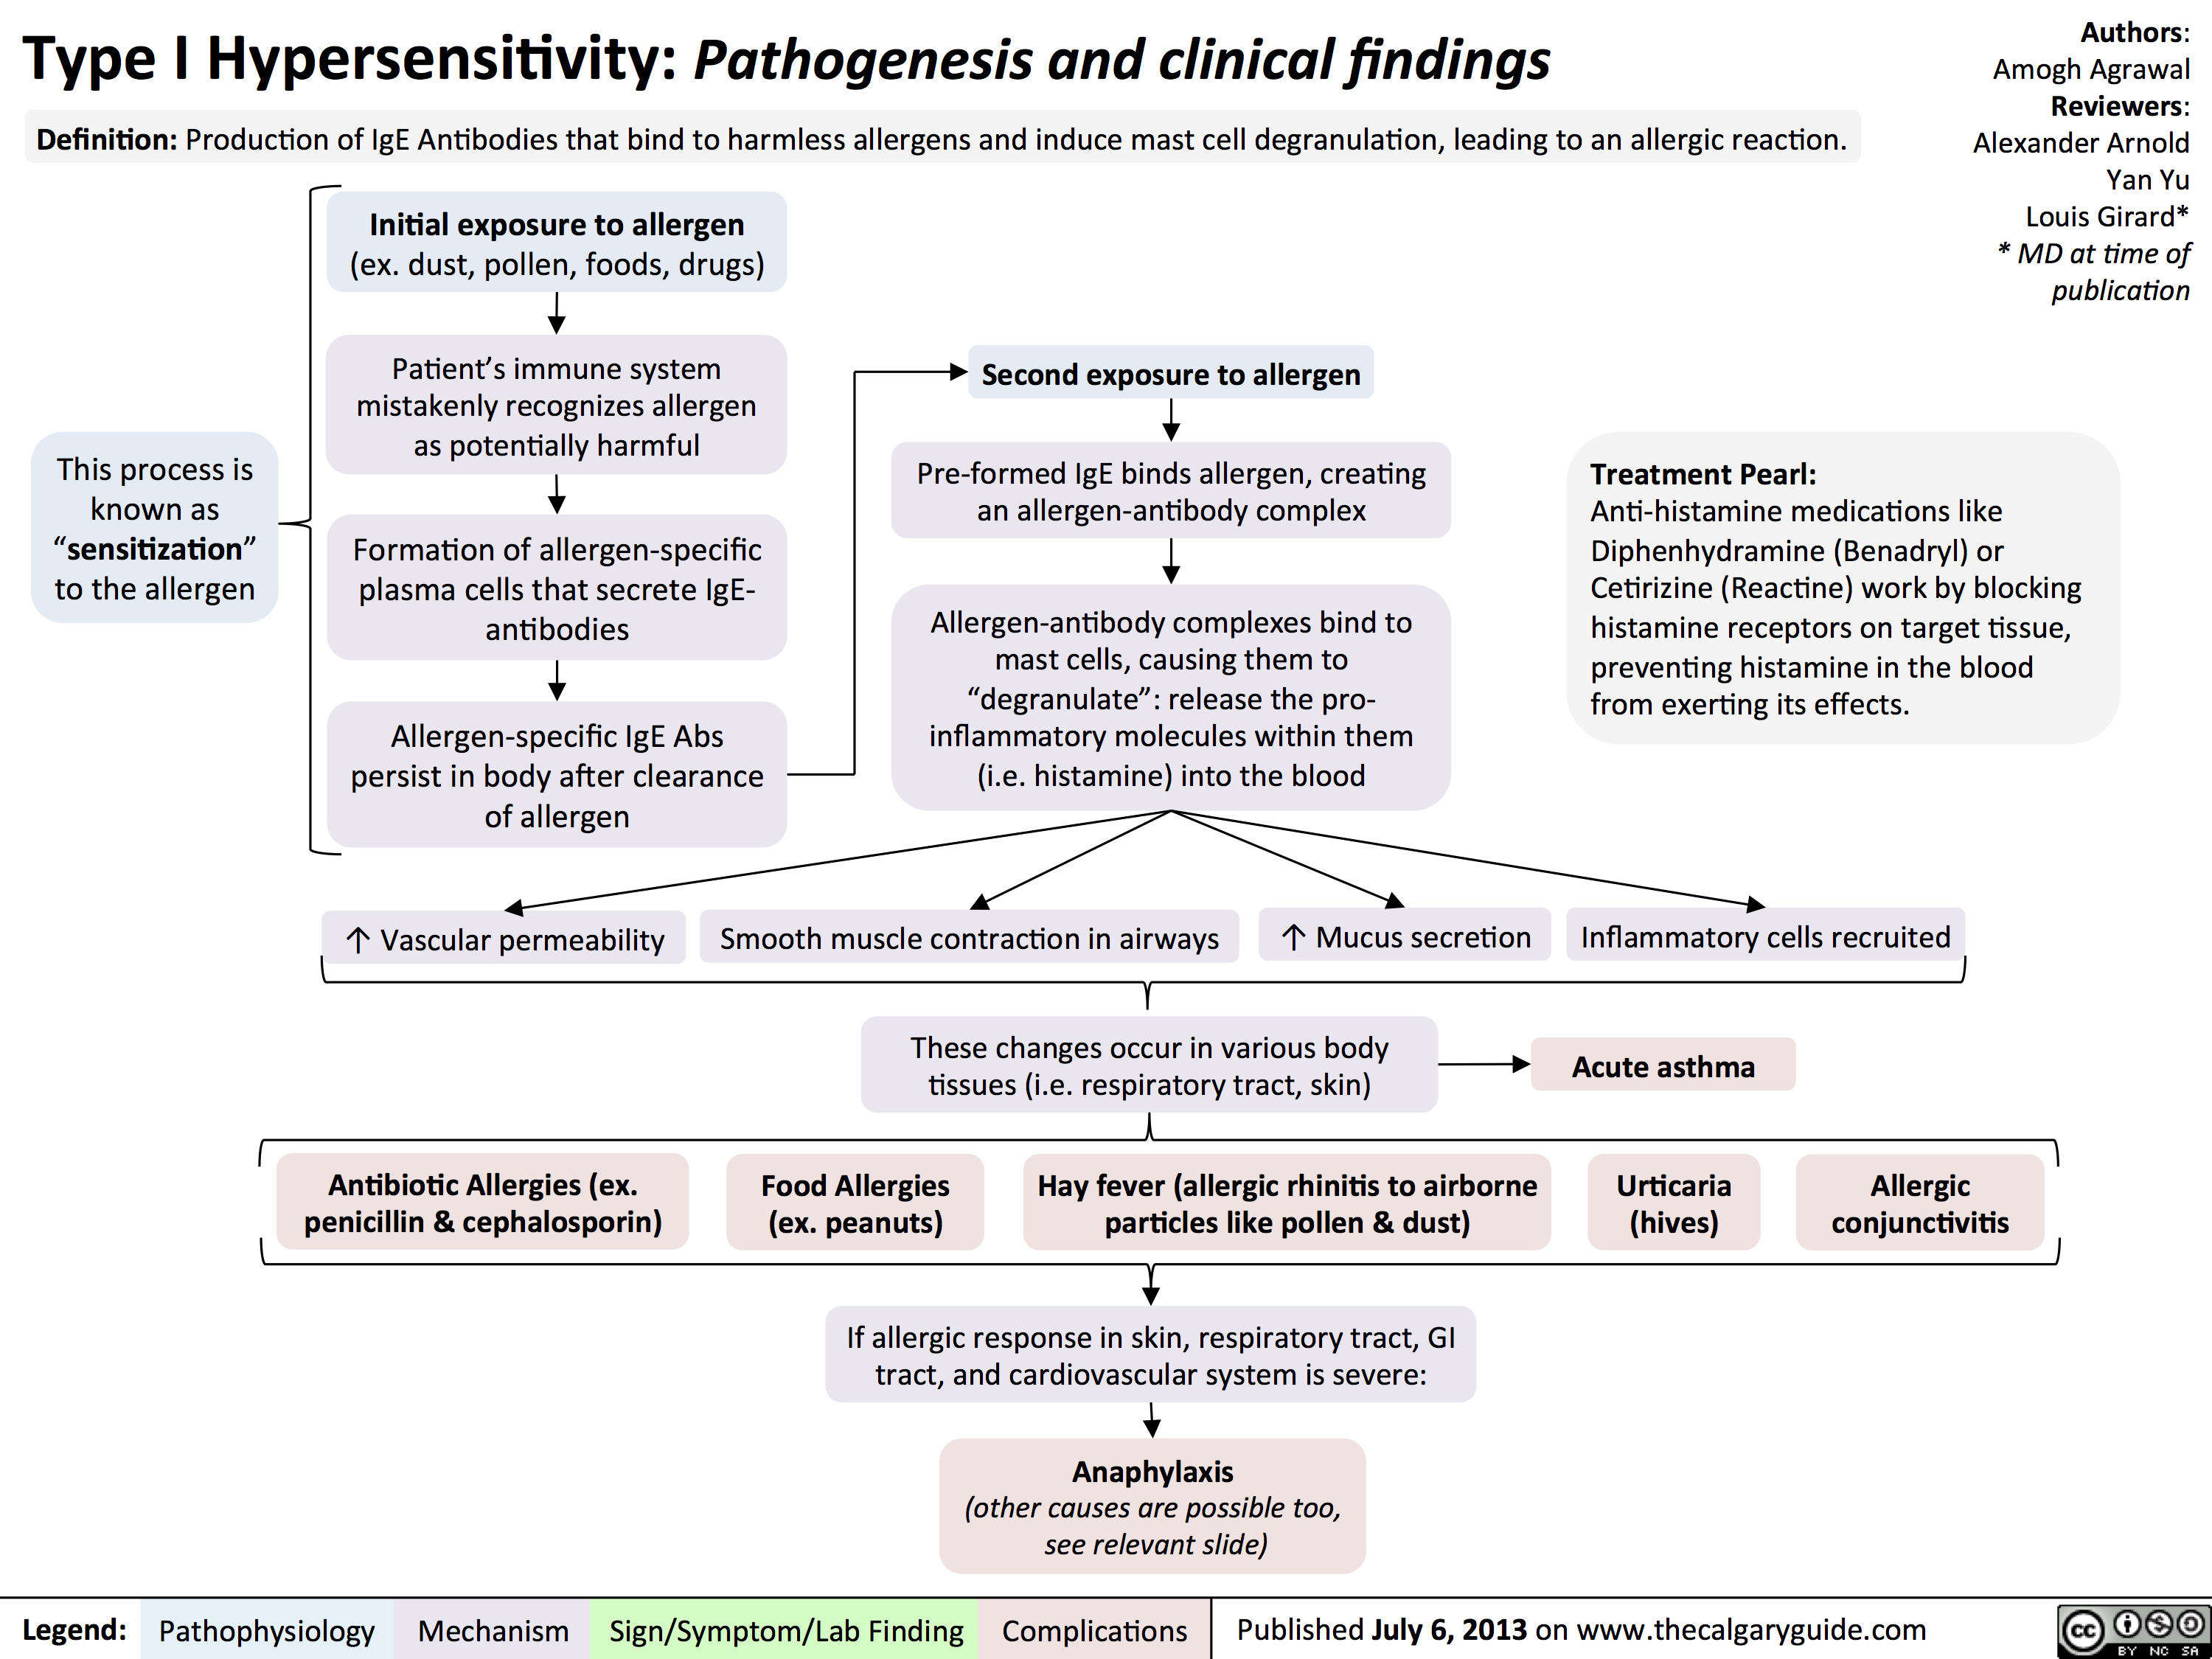 Type I Hypersensitivity: Pathogenesis and clinical findings